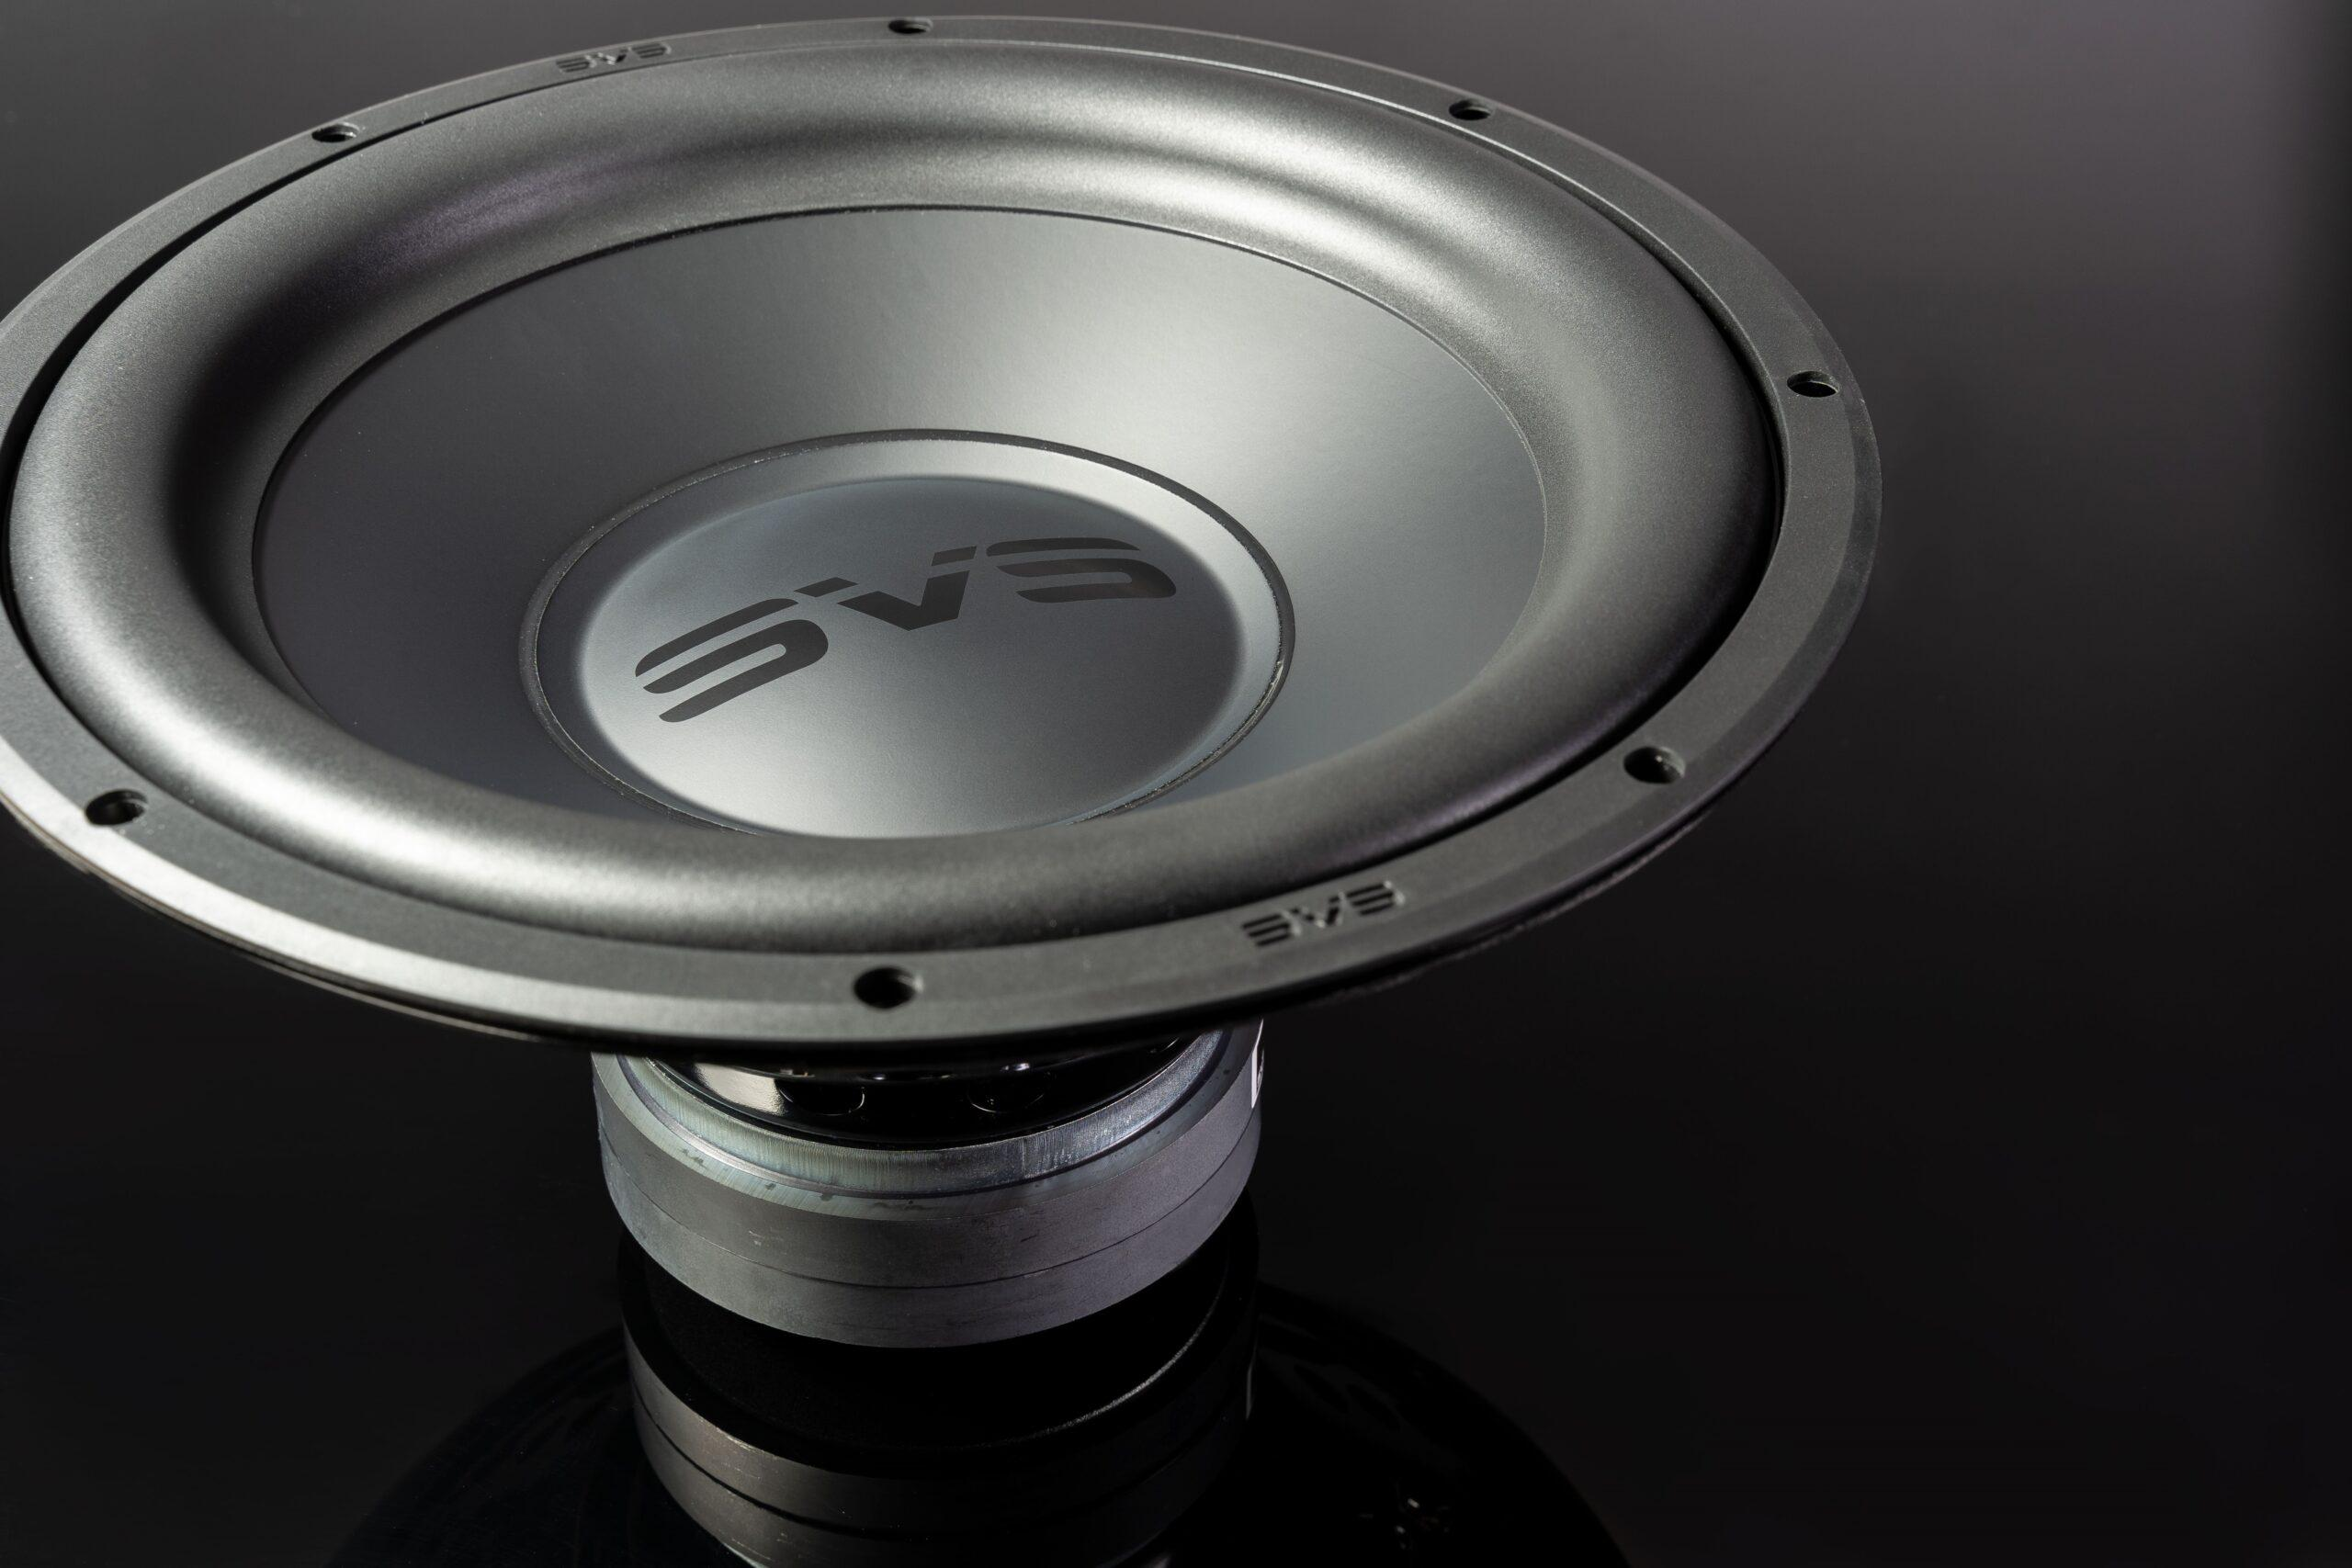 The new SVS 1000 Pro Series subwoofers deliver more powerful bass and offer more configuration options than we're accustomed to seeing at this price.